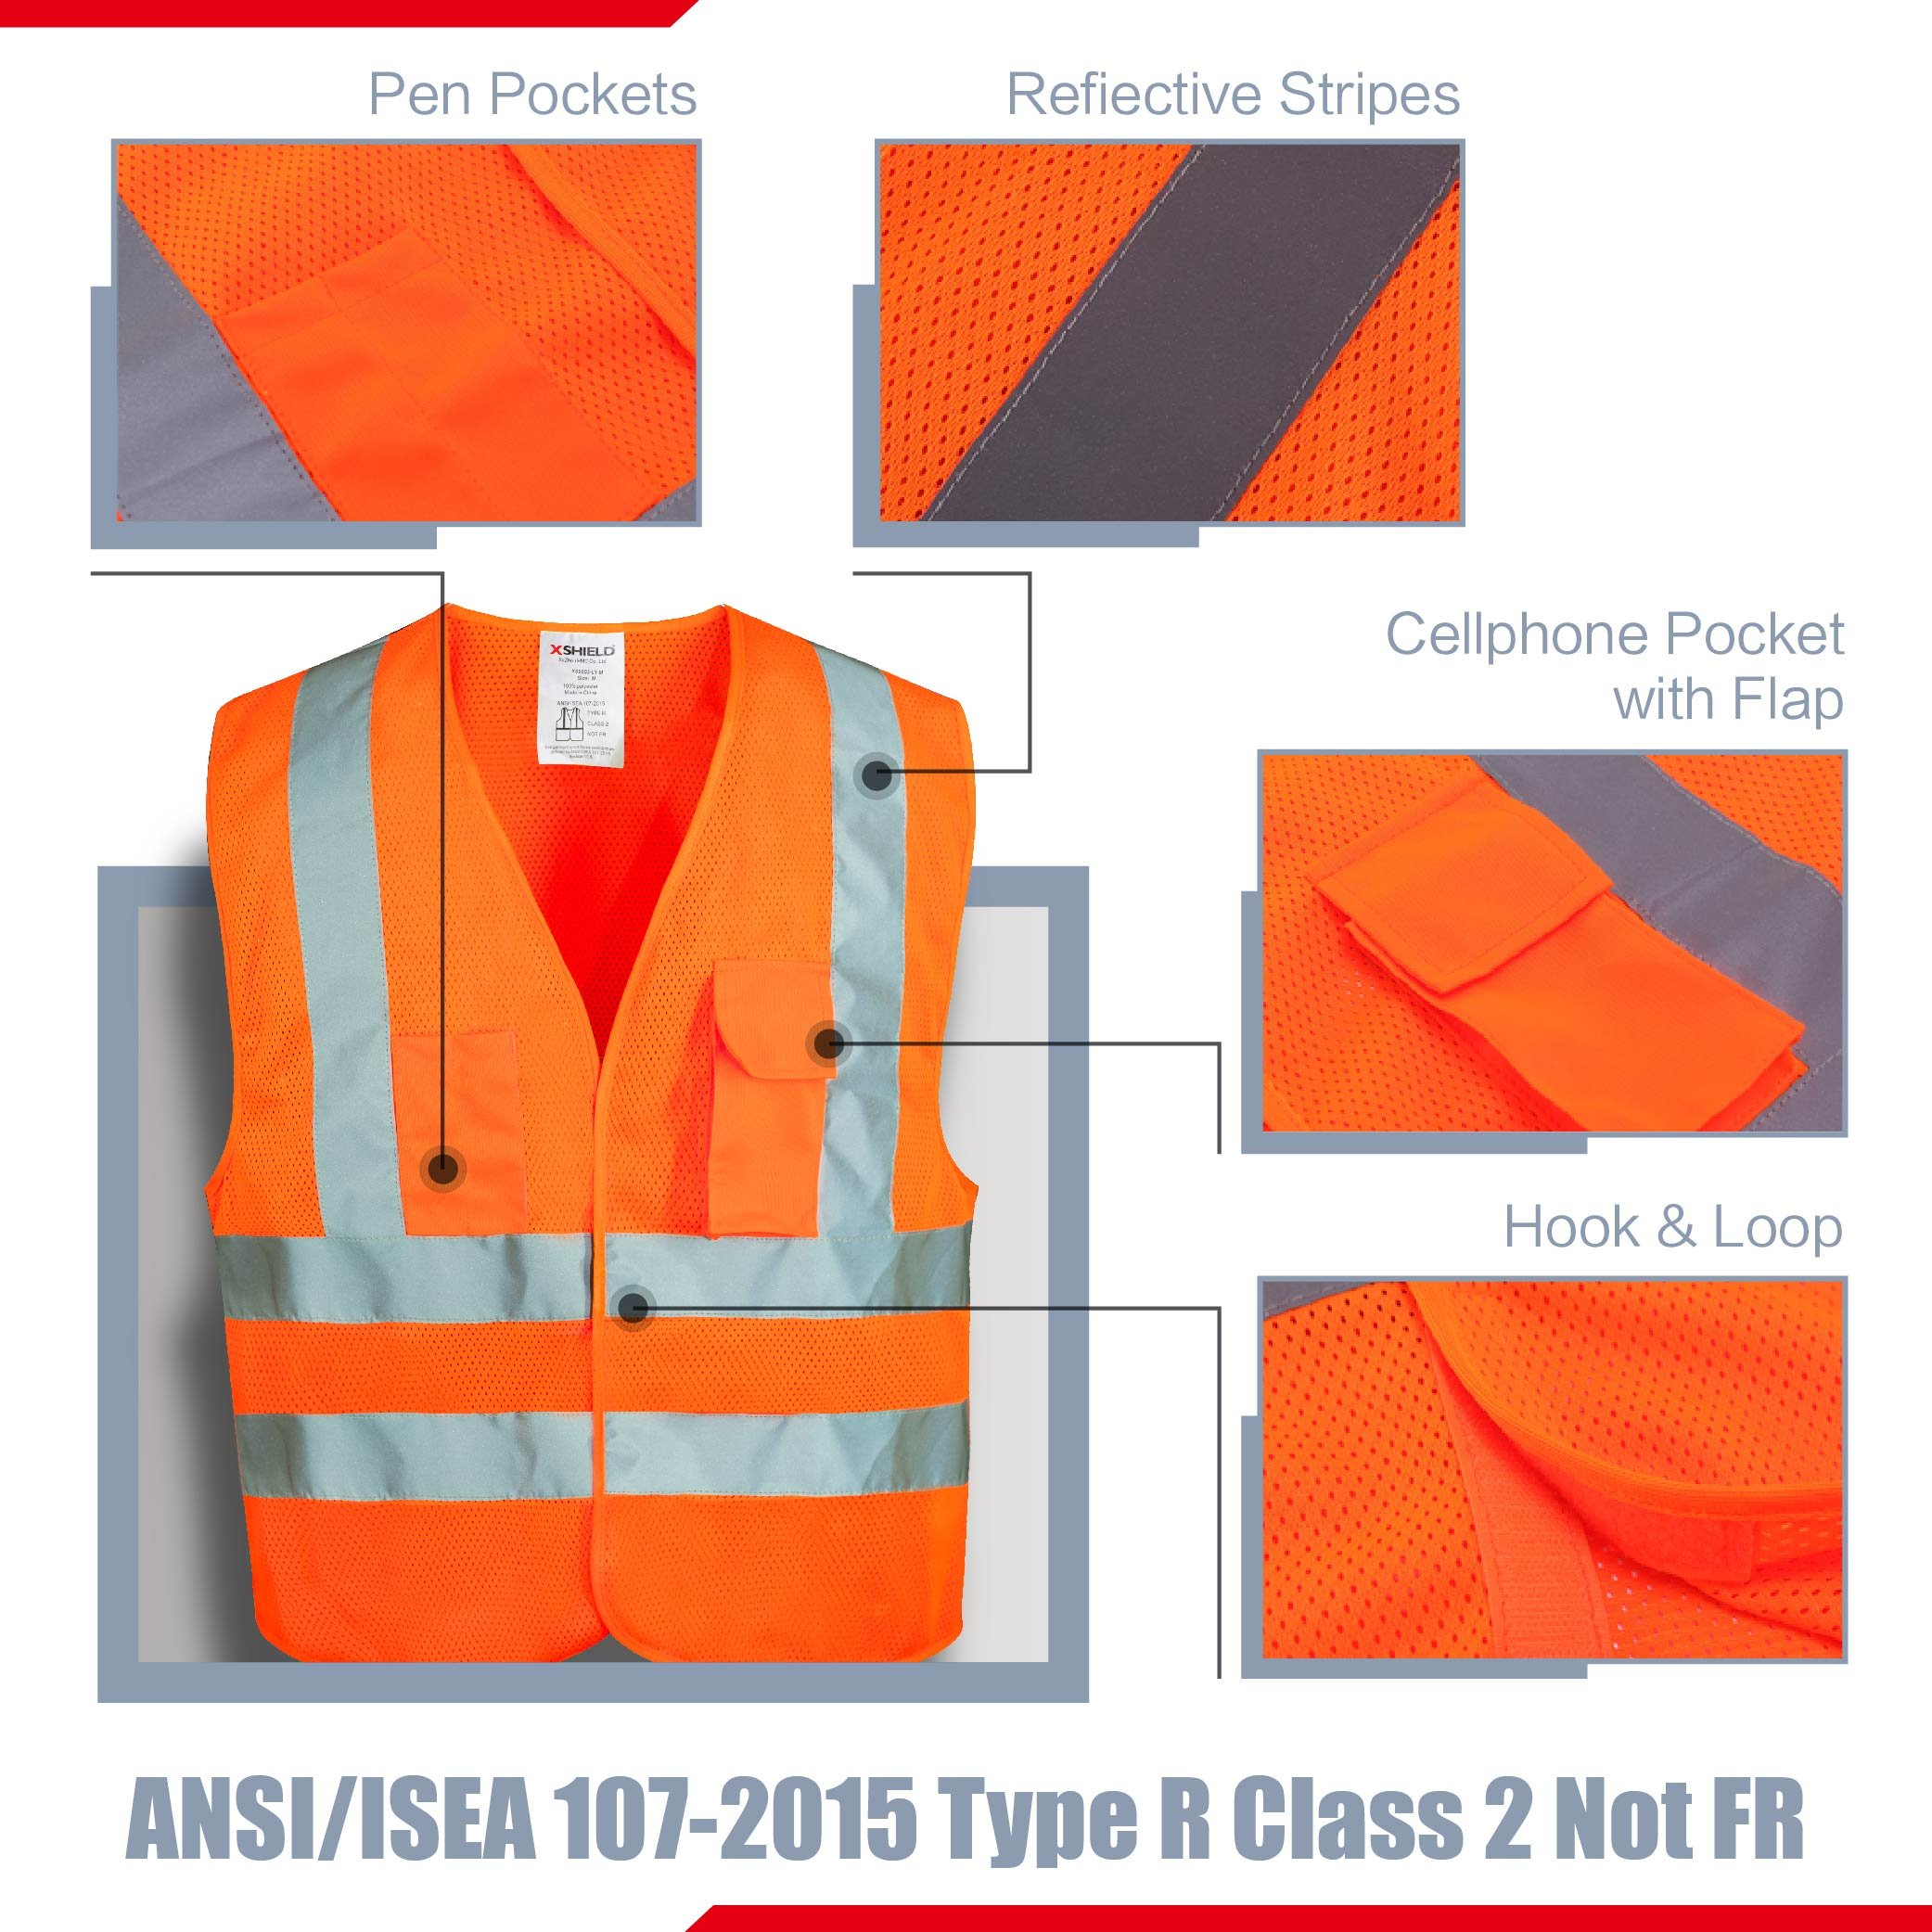 XSHIELD XS0006,High Visibility Mesh Safety Vest with Silver Stripe,ANSI/ISEA 107-2015 Type R Class2 Not FR,Pack of 5 (XL, Orange) by X-Shield (Image #2)